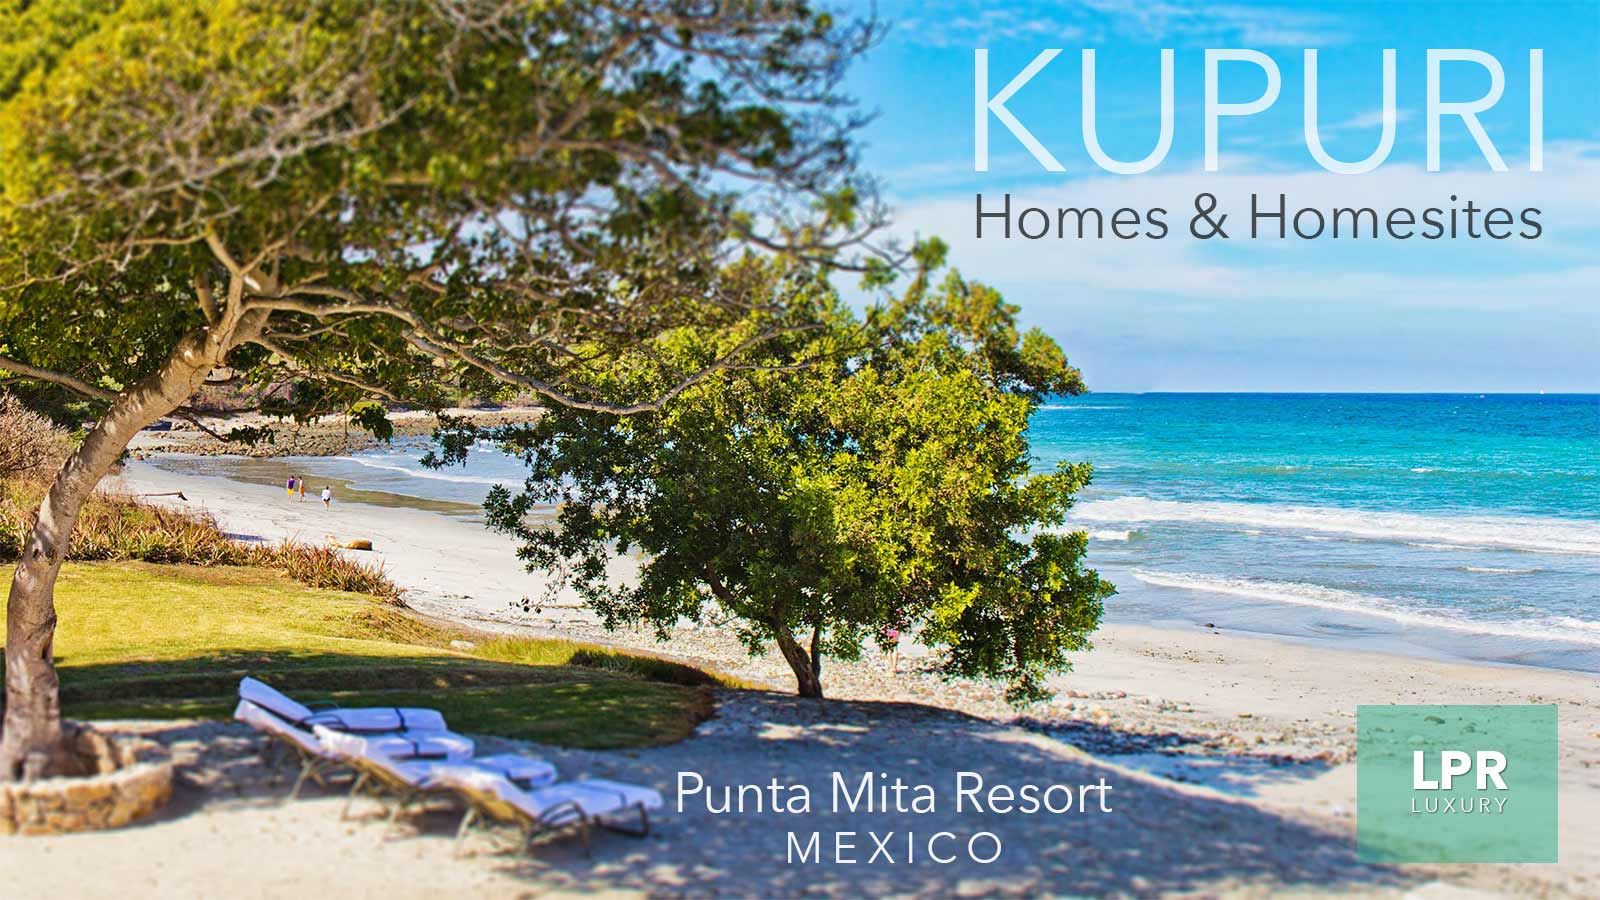 Kupuri - Punta Mita Real Estate : Luxury Resort Homes and Homesites